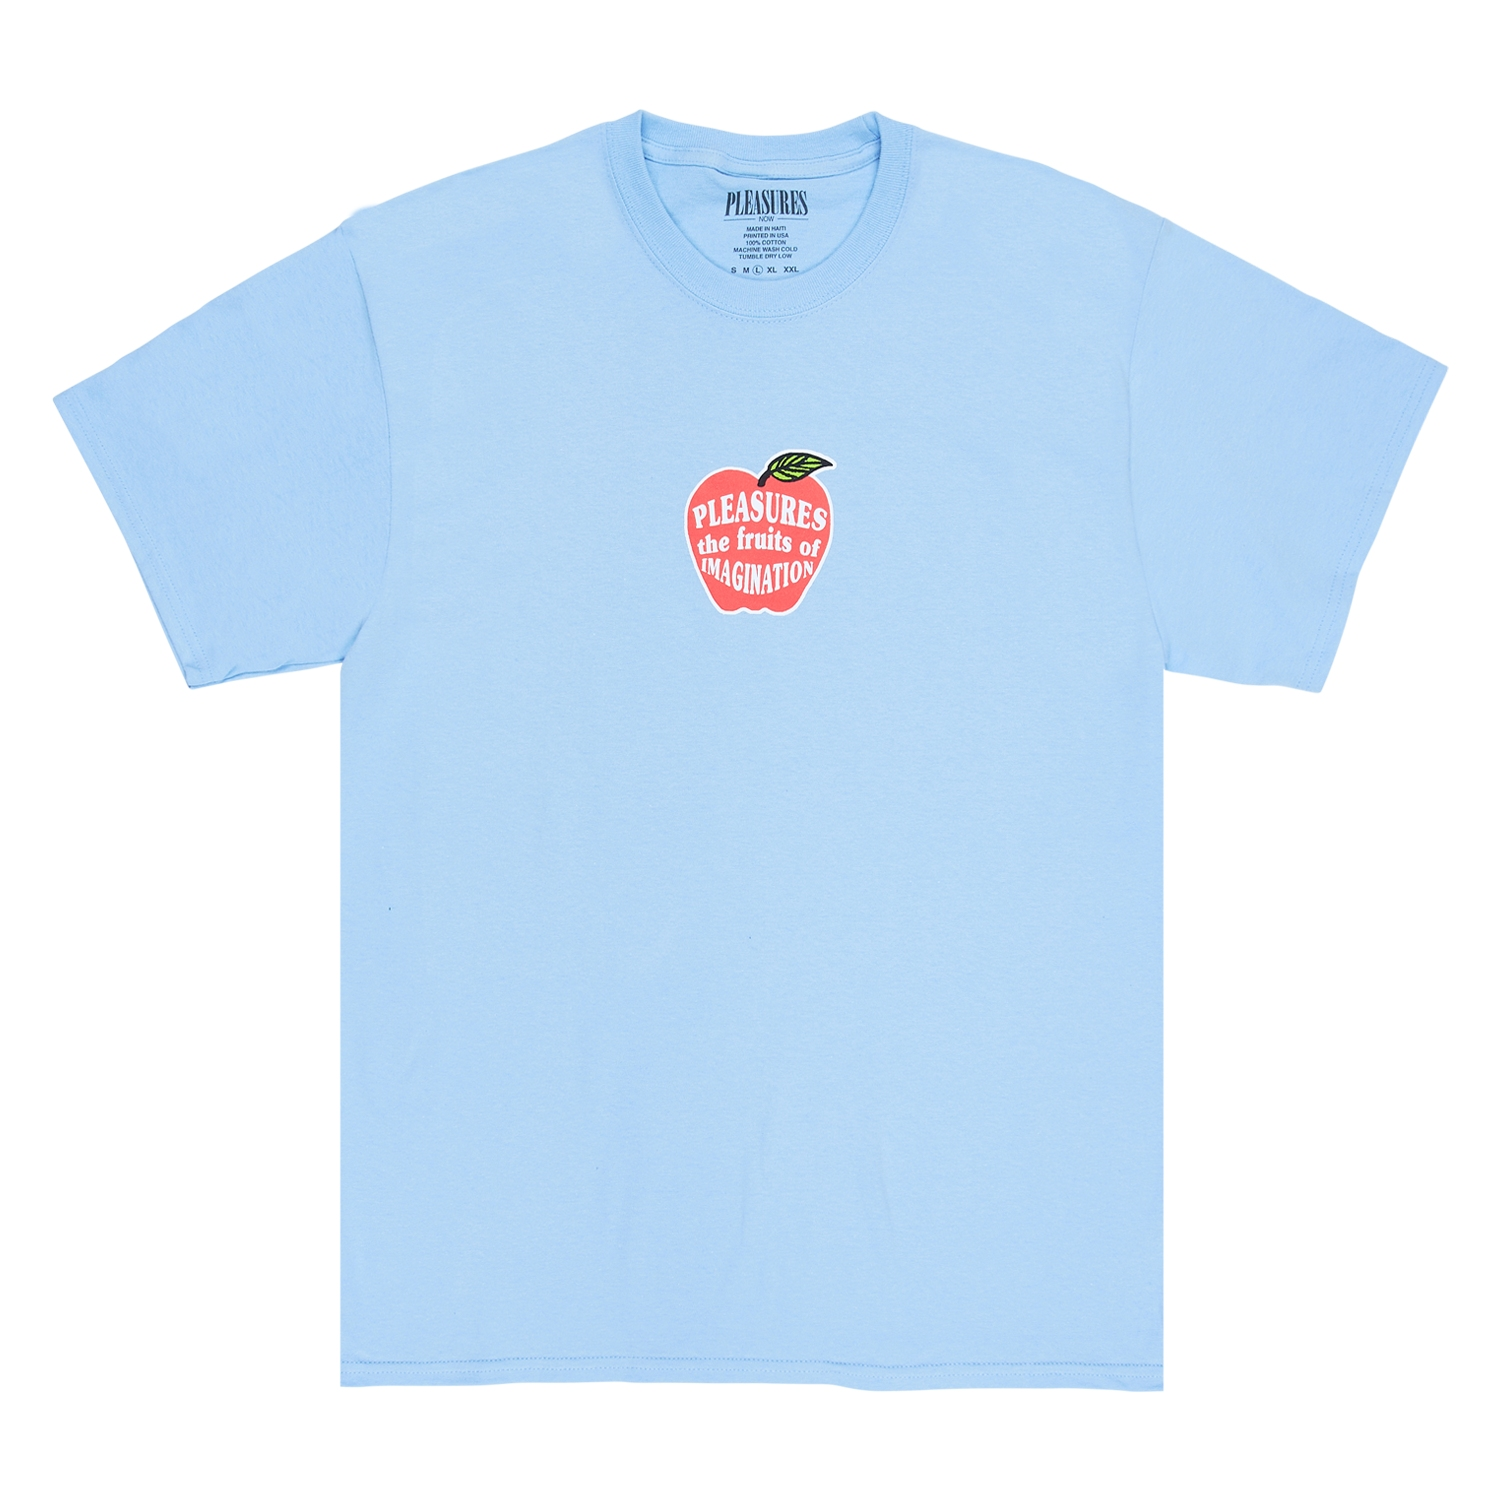 【PLEASURES/プレジャーズ】IMAGINATION T-SHIRT Tシャツ / POWDER BLUE